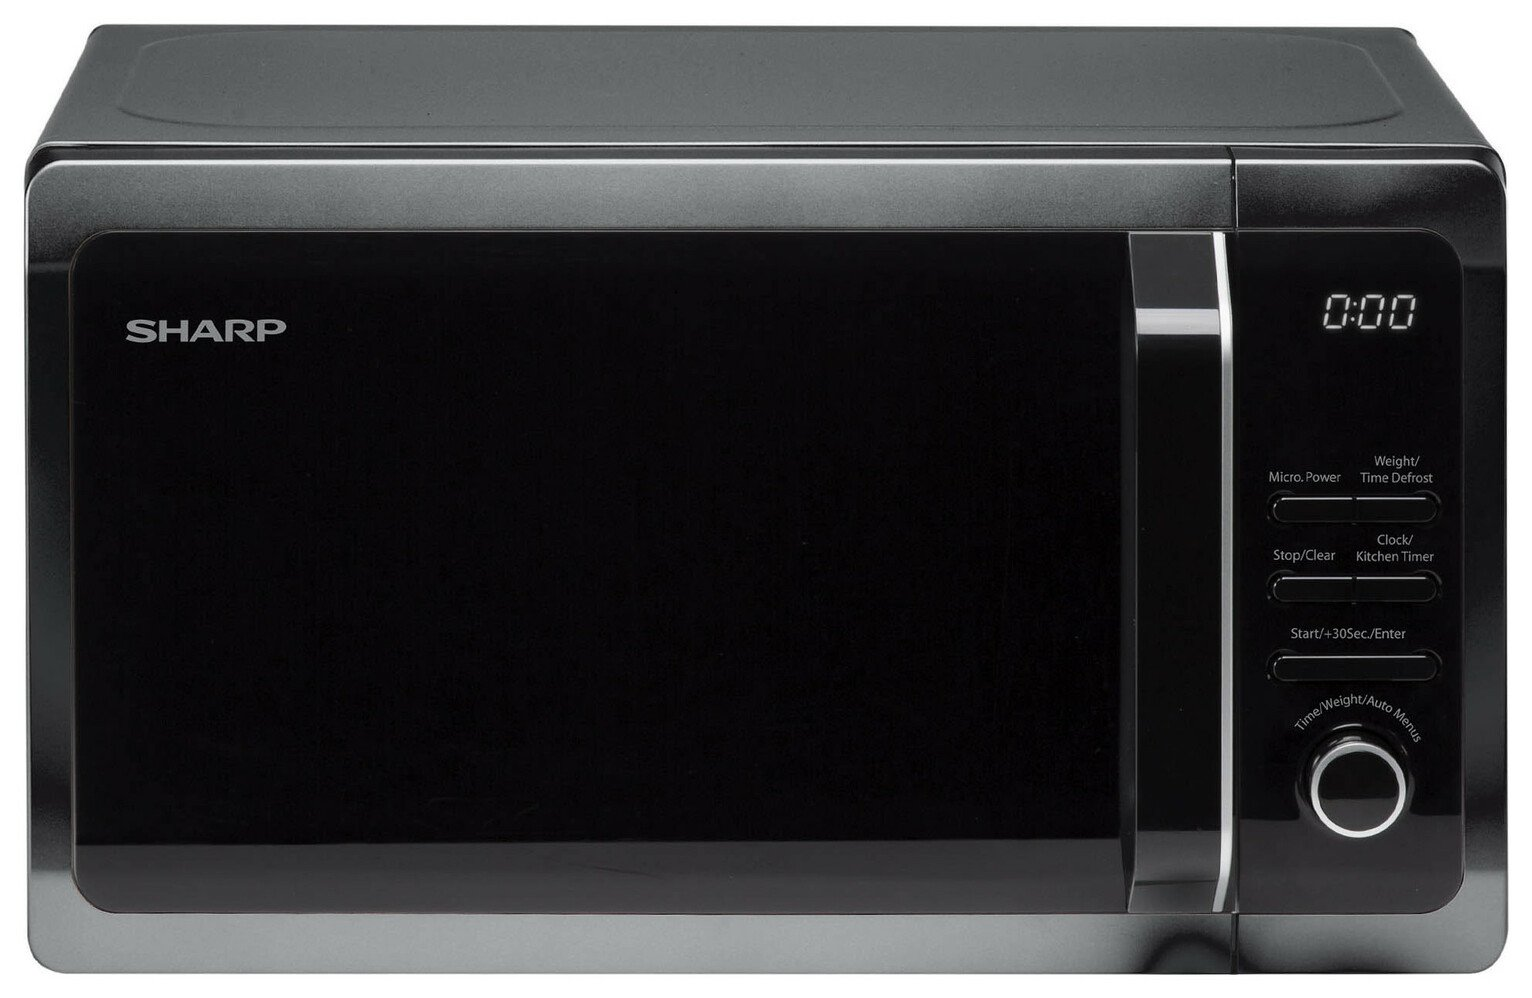 Sharp 800W Standard Microwave R274KM - Black